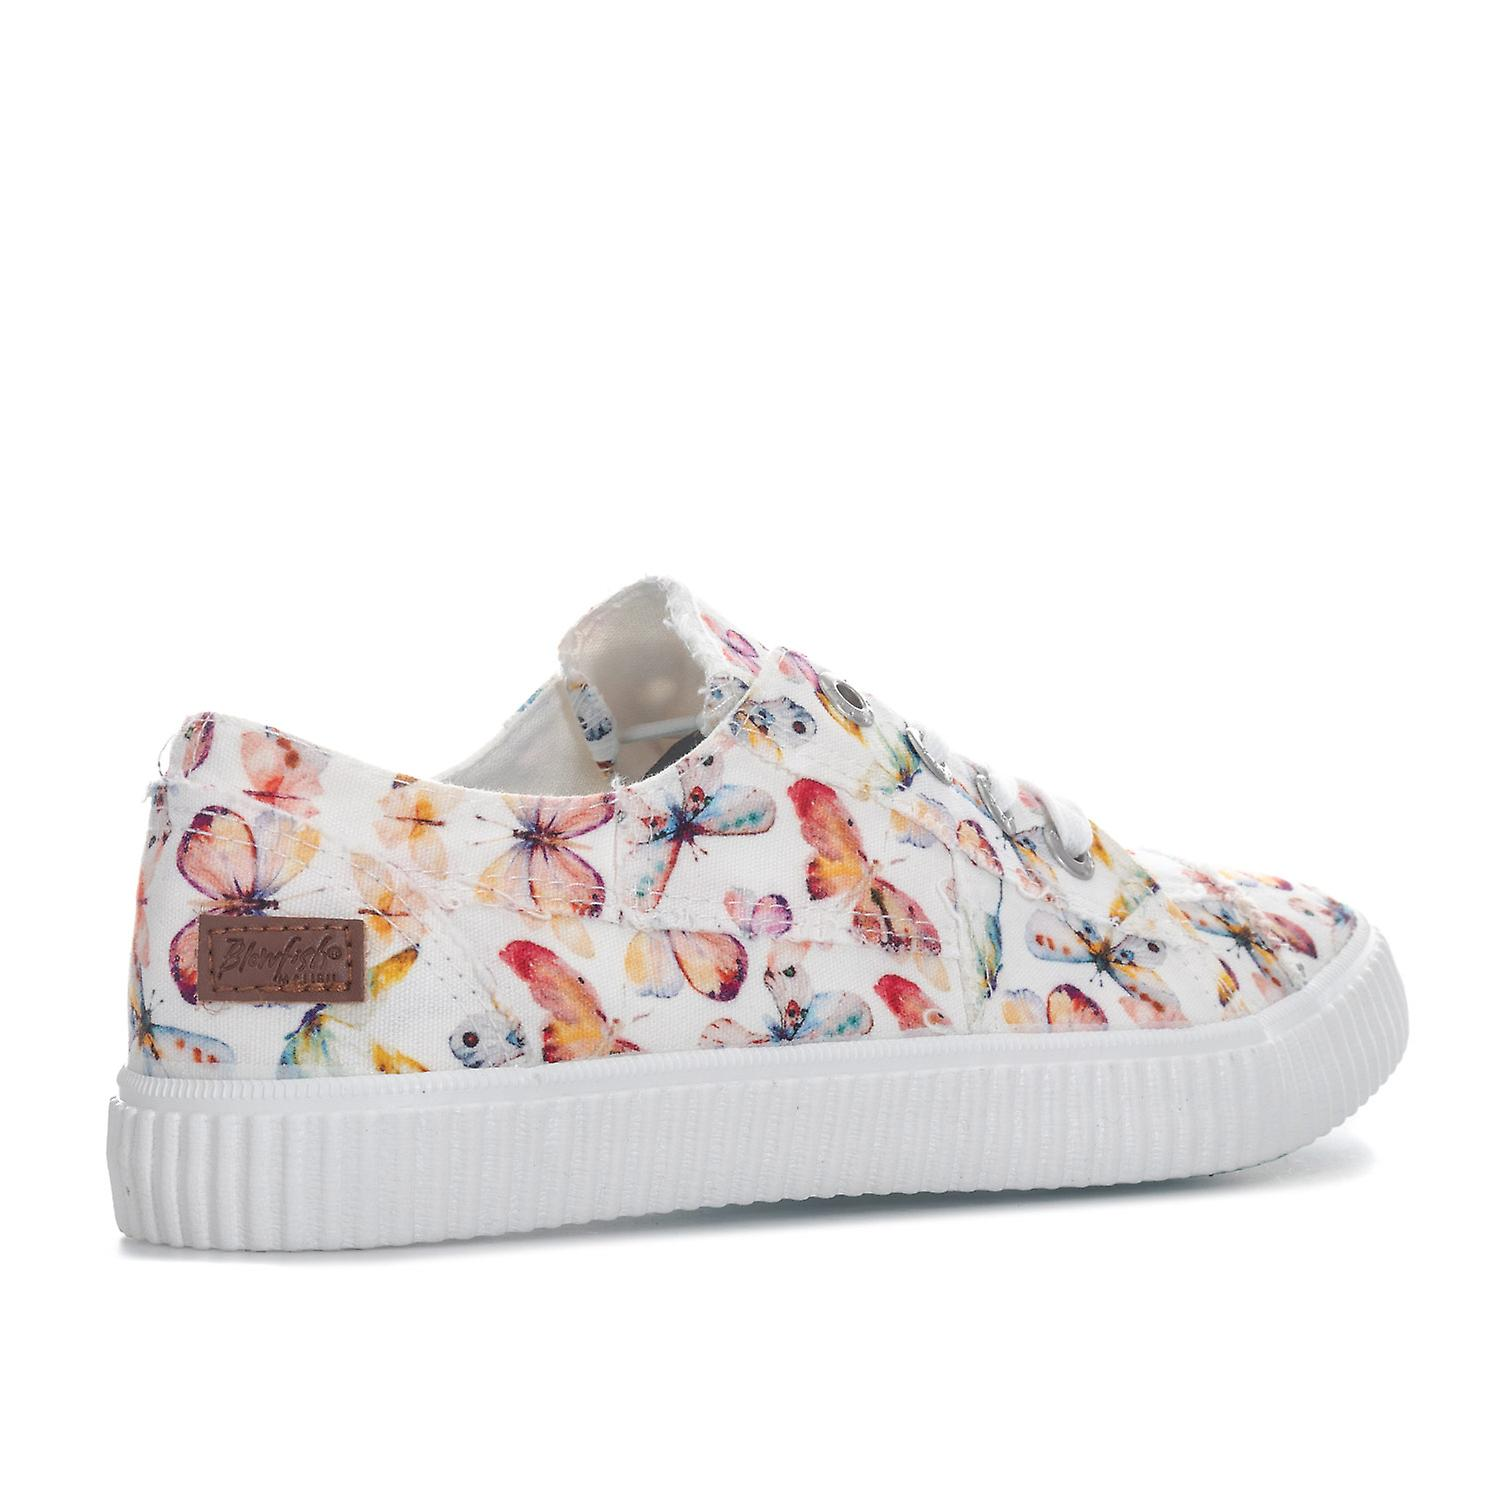 Womens Blowfish Cablee Pumps In Off White Flutter Print